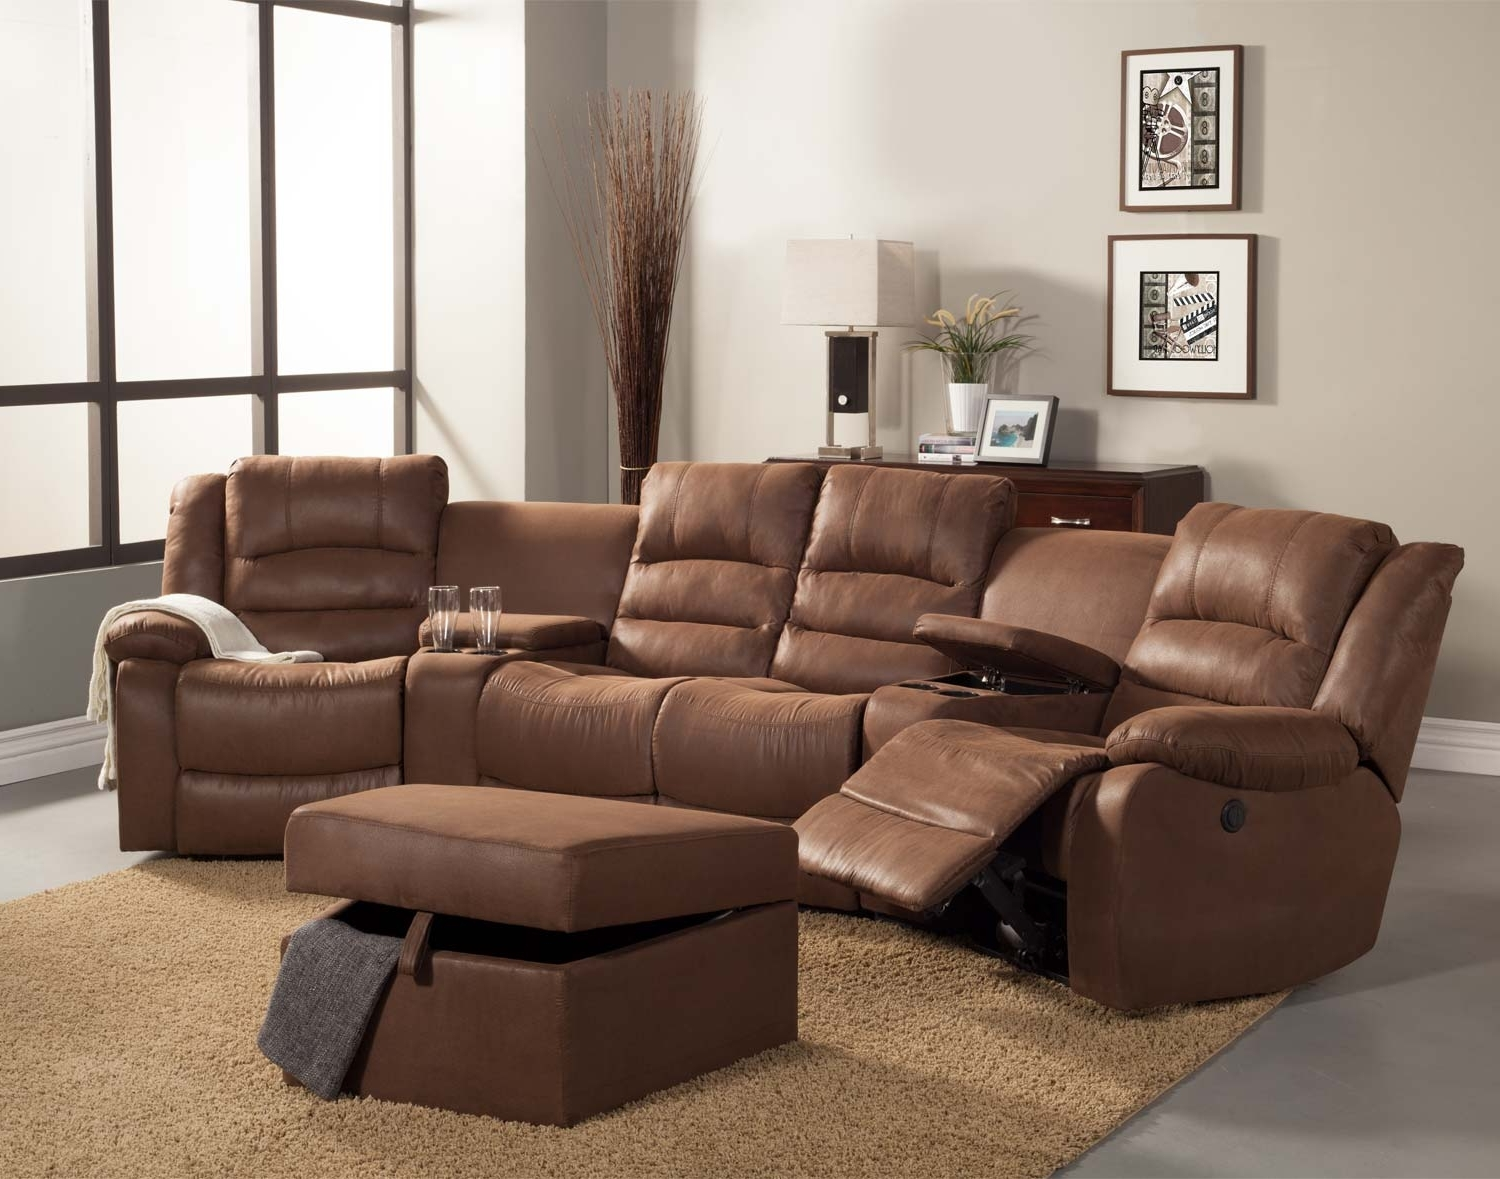 Preferred Joplin Mo Sectional Sofas With Regard To Homelegance Tucker Sectional Sofa Set – Brown – Bomber Jacket (View 15 of 15)